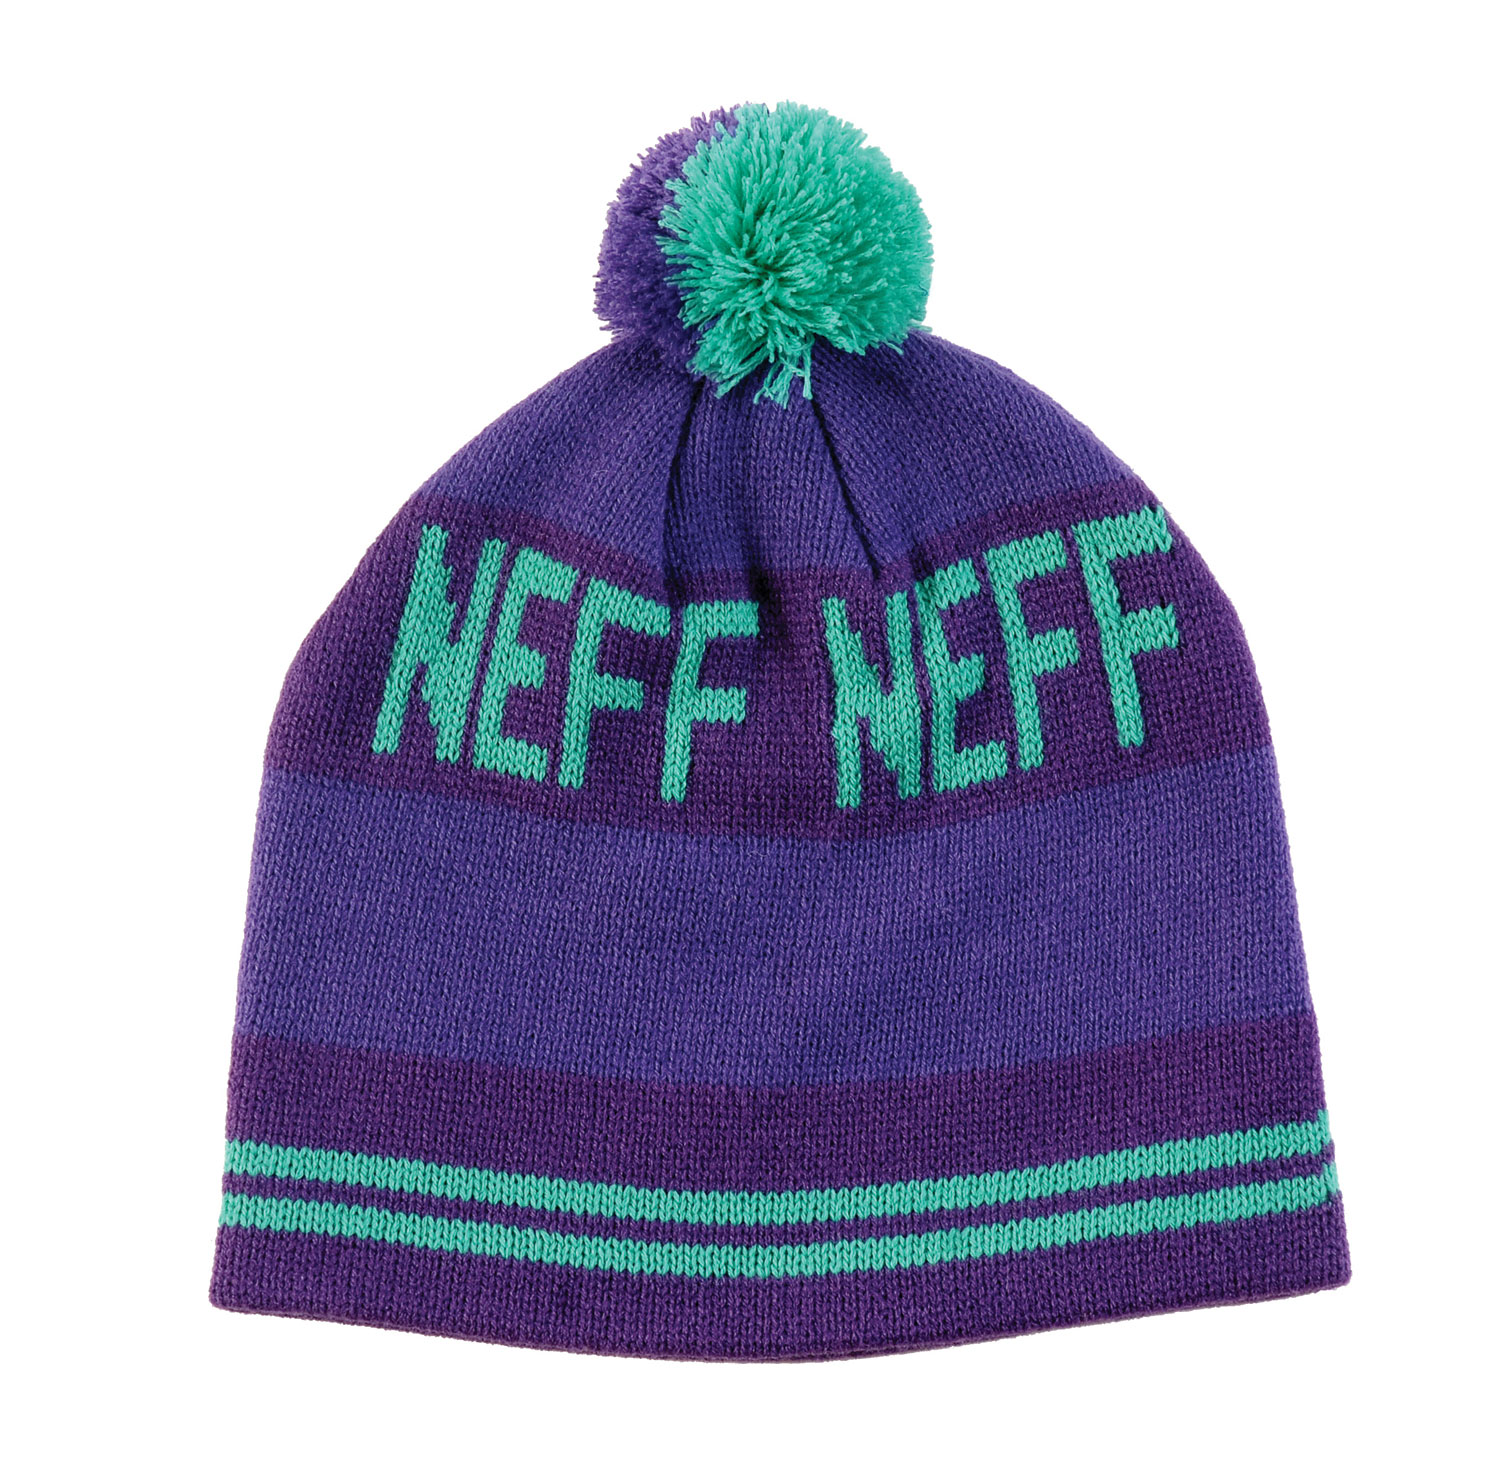 Skateboard Key Features of the Neff Classic Beanie Classic Style Skull Fit with Pom Pom 100% Acrylic - $13.95